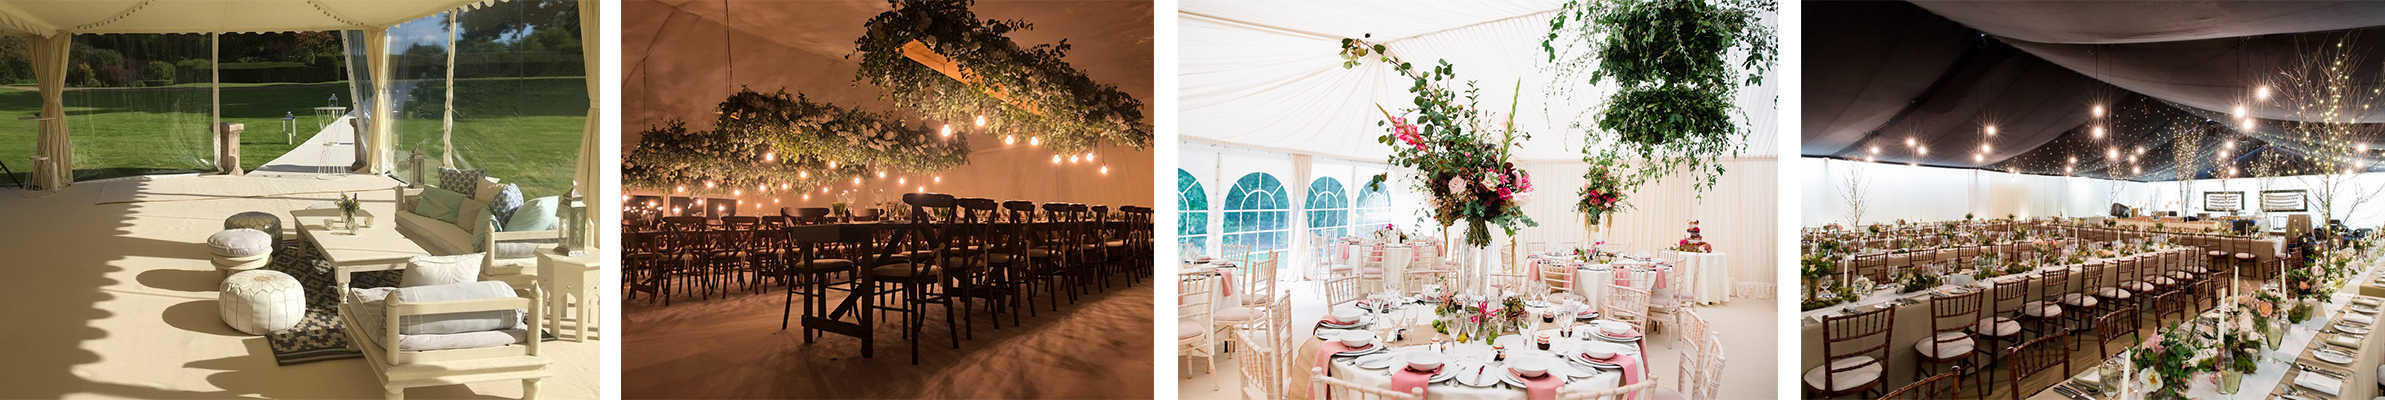 Wedding marquee hire: Decor options